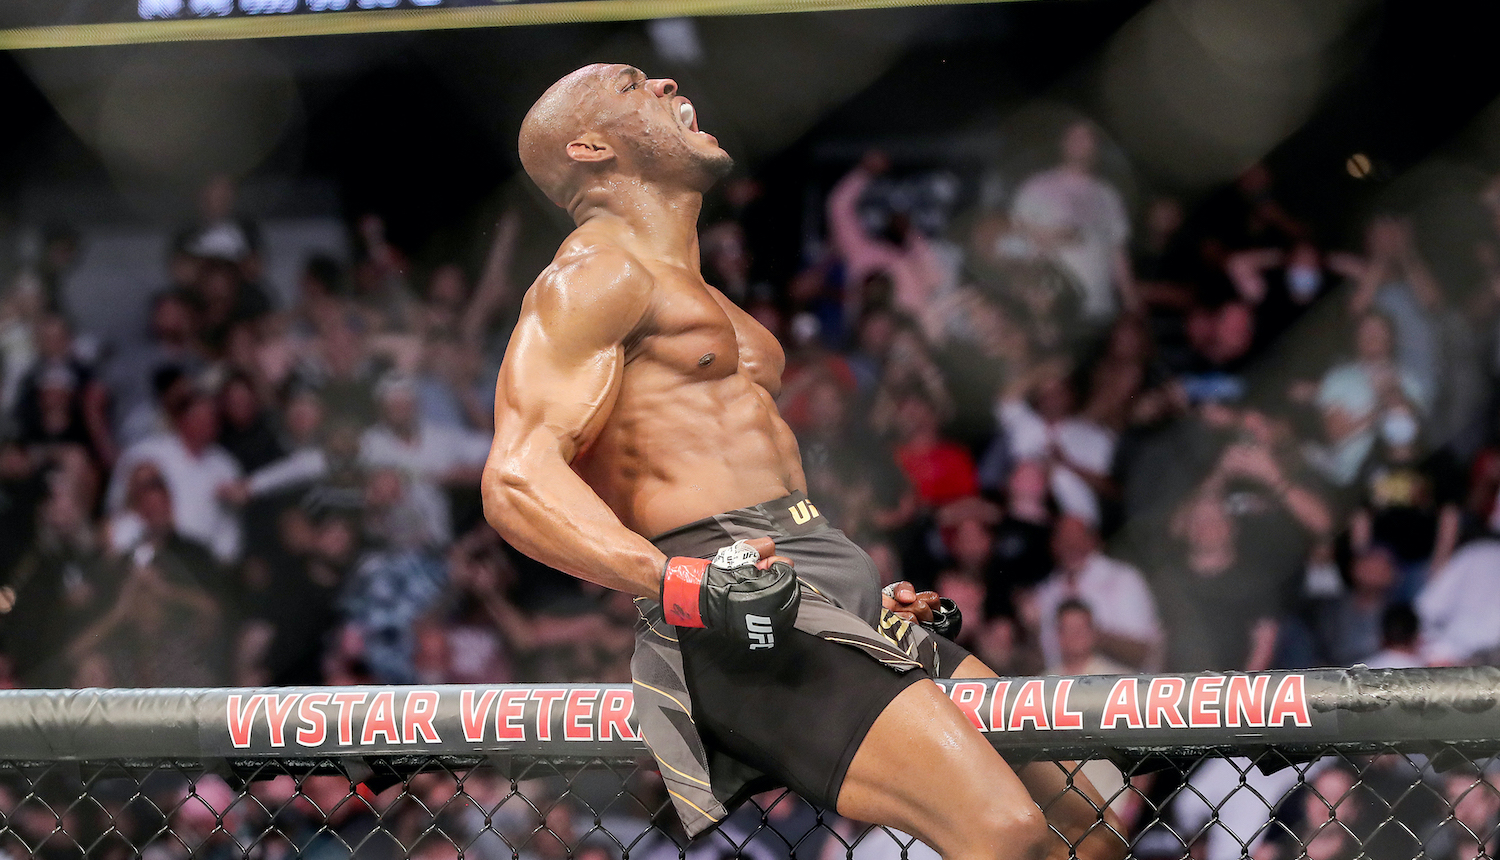 JACKSONVILLE, FL - APRIL 25: Kamaru Usman of Nigeria celebrates his victory over Jorge Masvidal of the United States during the Welterweight Title bout of UFC 261 at VyStar Veterans Memorial Arena on April 25, 2021 in Jacksonville, Florida. (Photo by Alex Menendez/Getty Images)